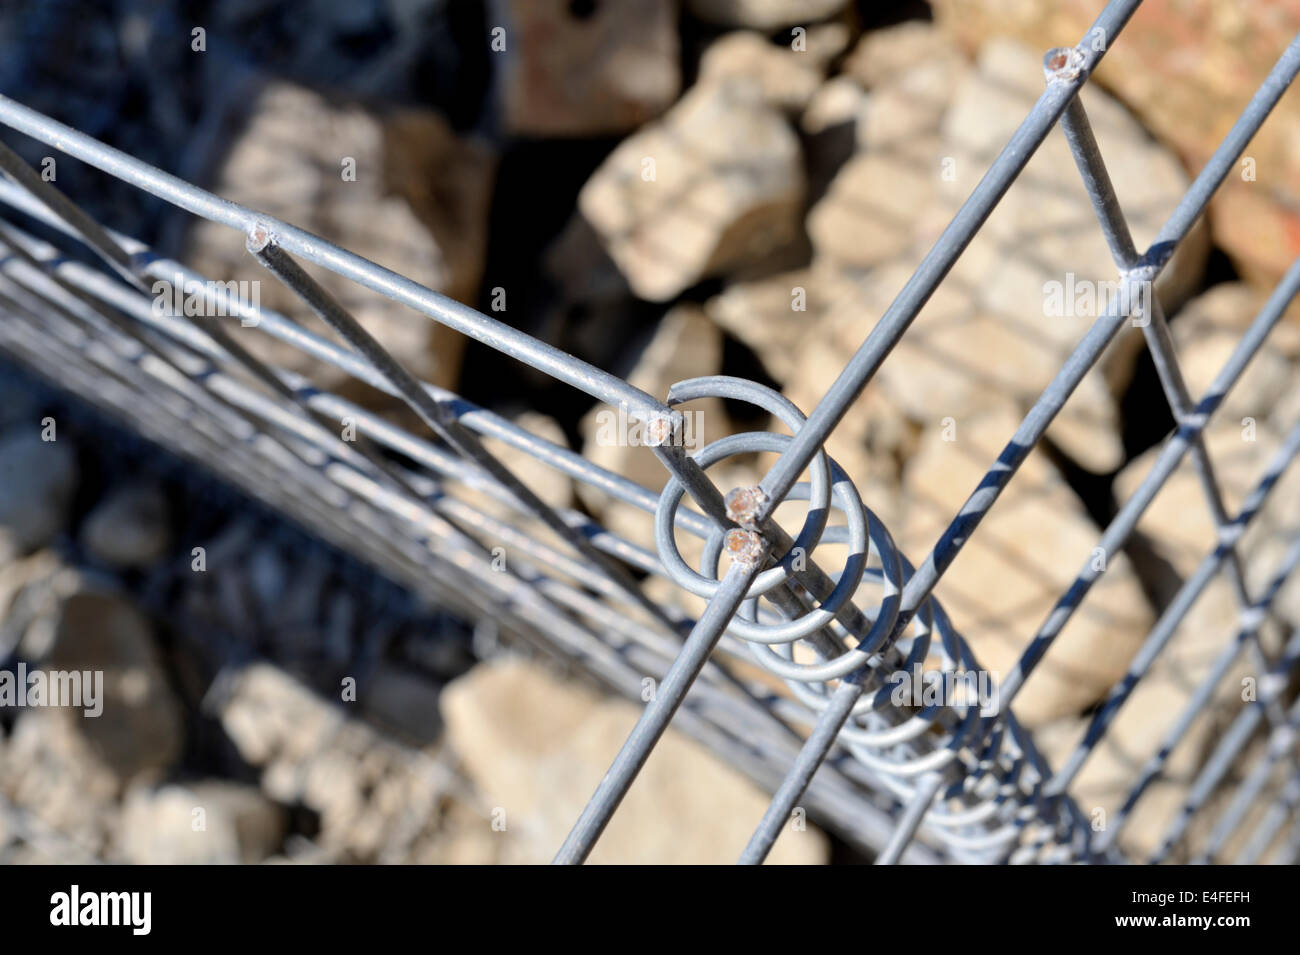 Close-up detail of galvanized wire mesh basket babion filled with rock for slope stabilization,  Aberporth, Wales, - Stock Image